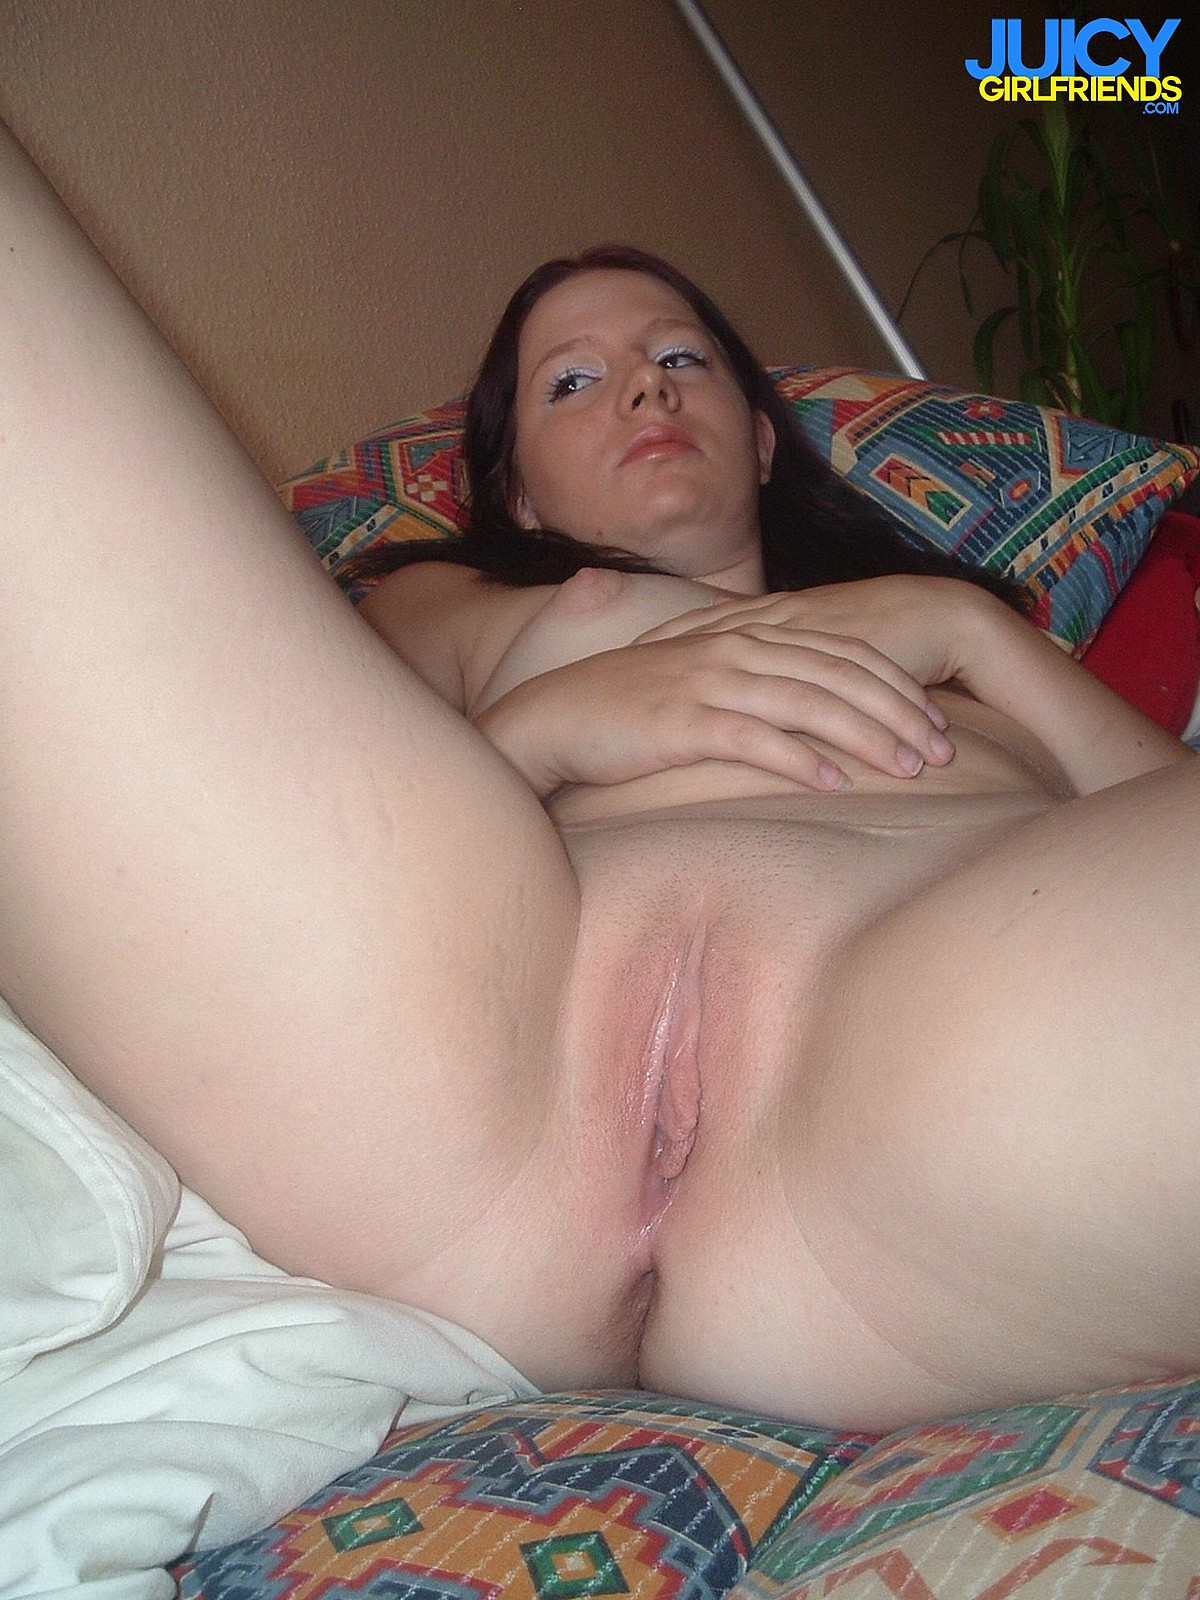 My girlfriends pussy is too tight